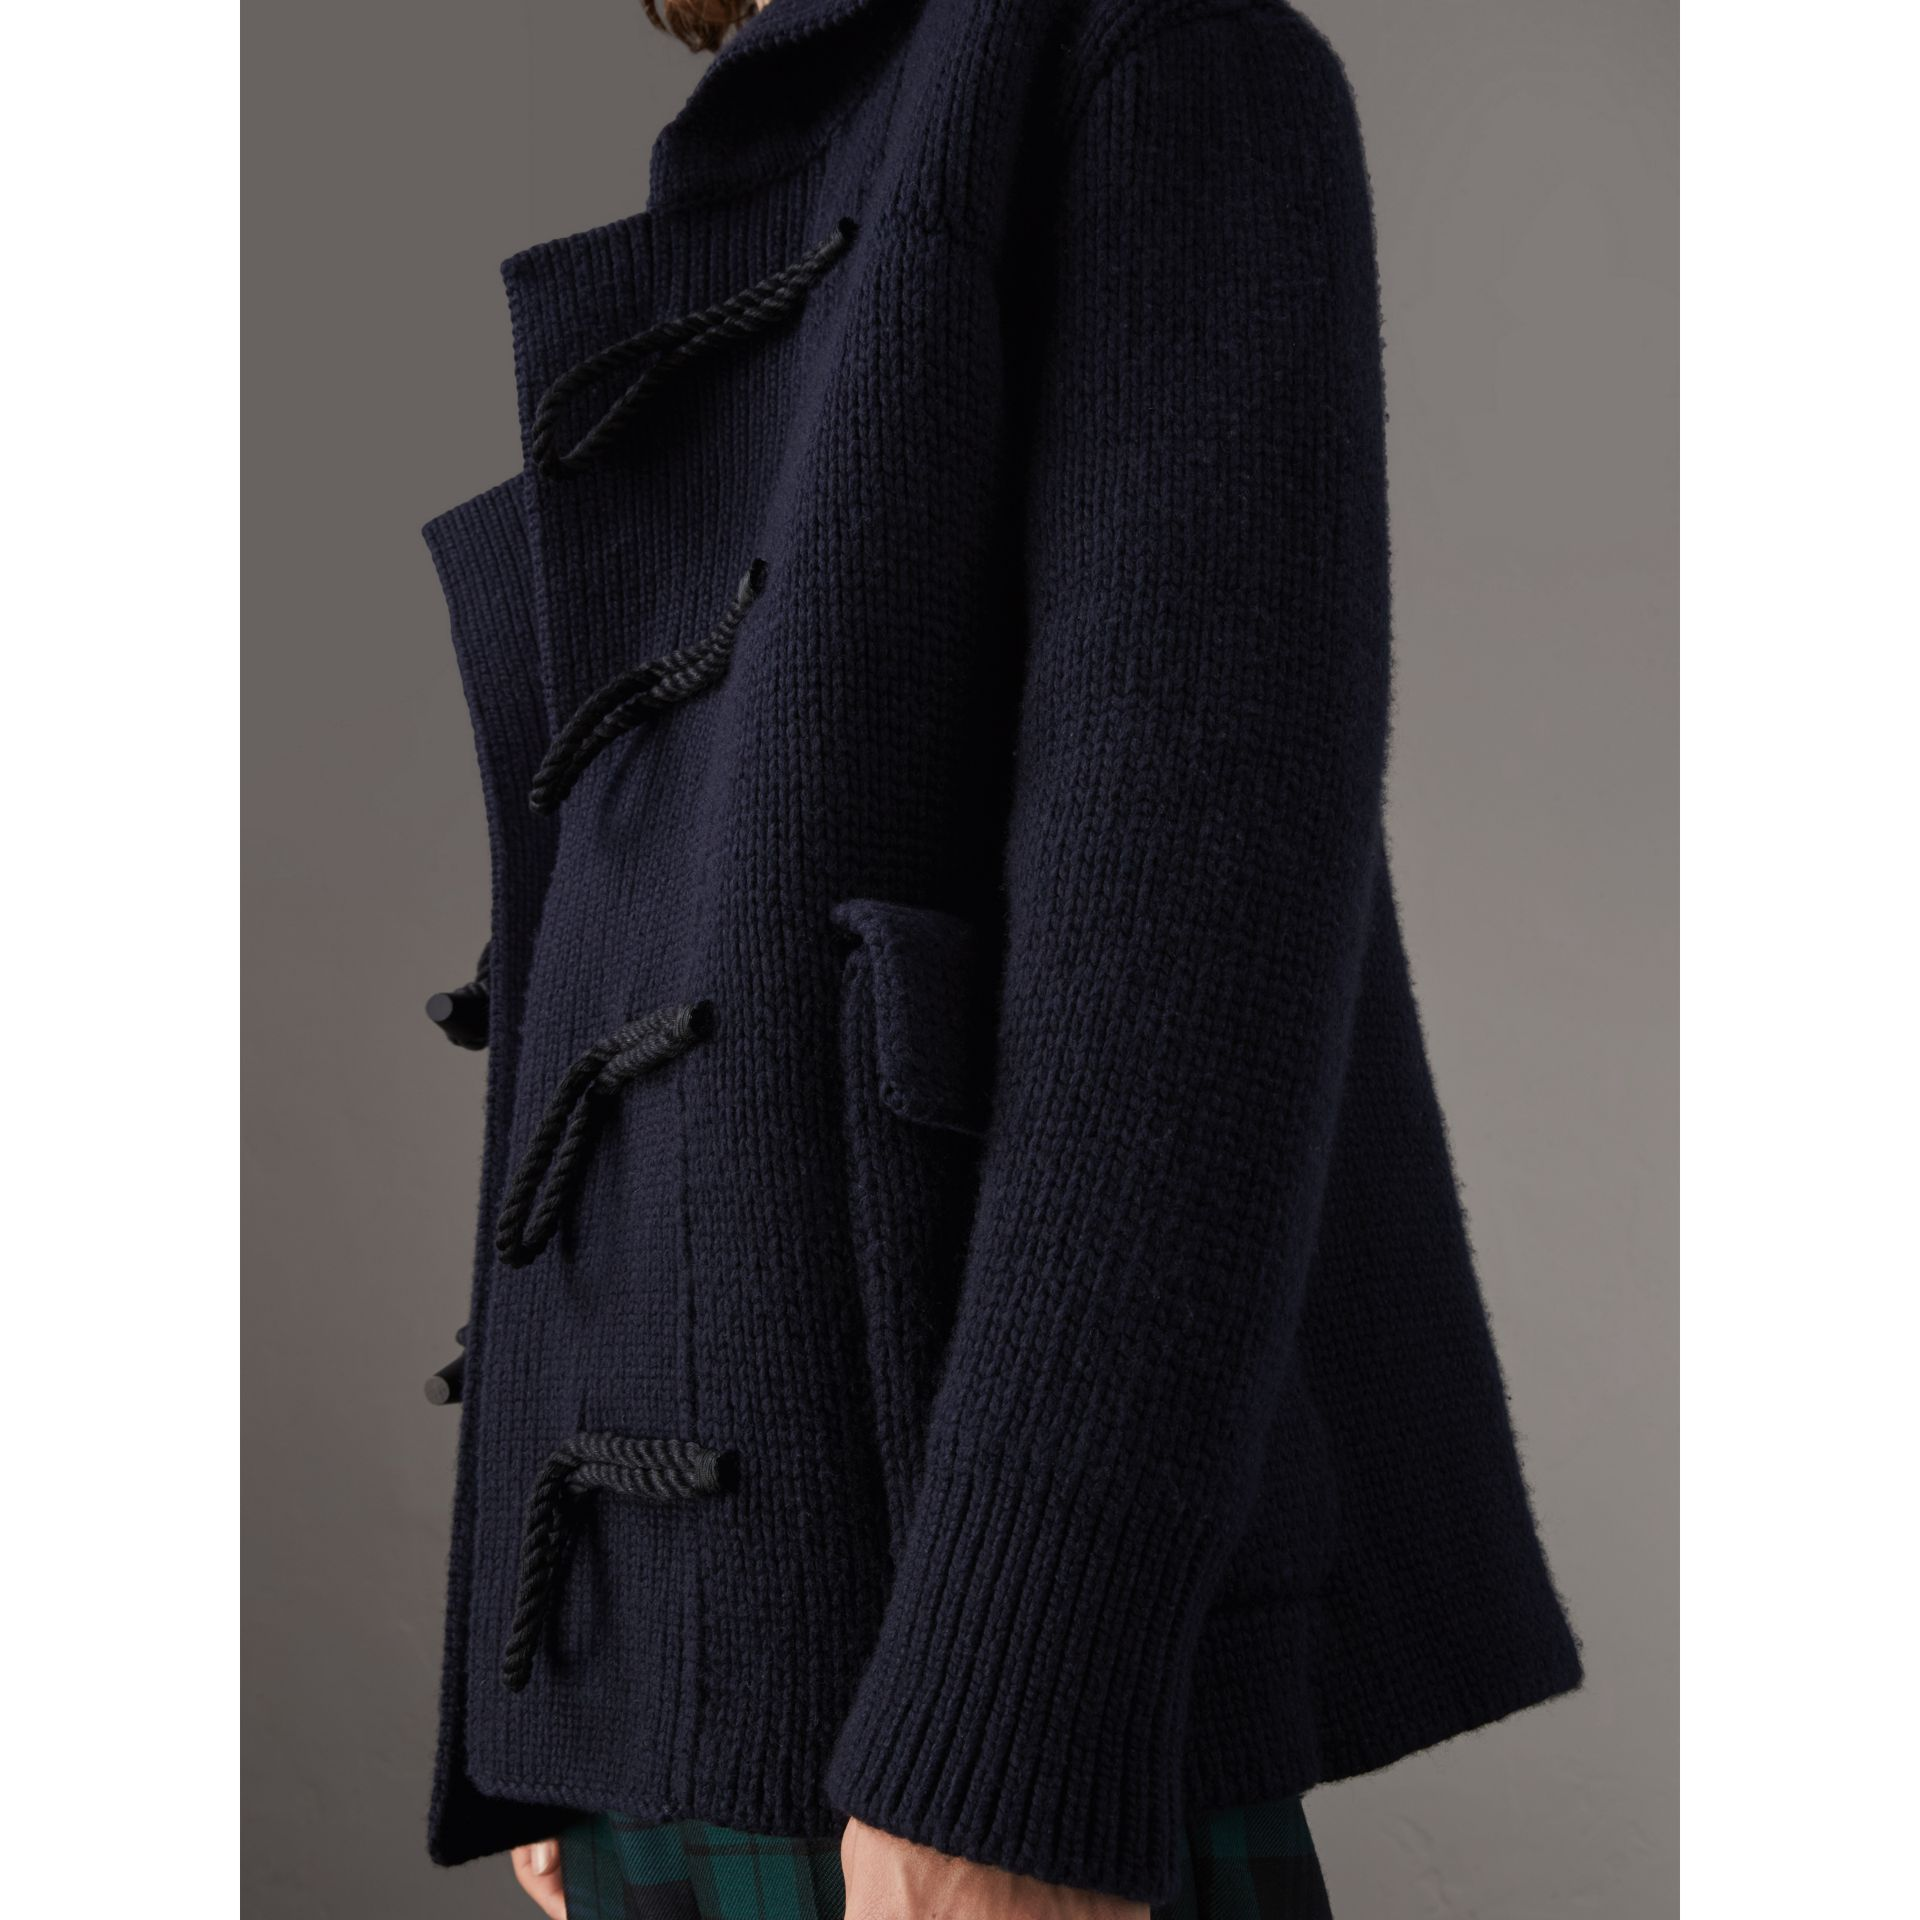 Knitted Wool Cashmere Blend Jacket in Navy - Men | Burberry Australia - gallery image 1